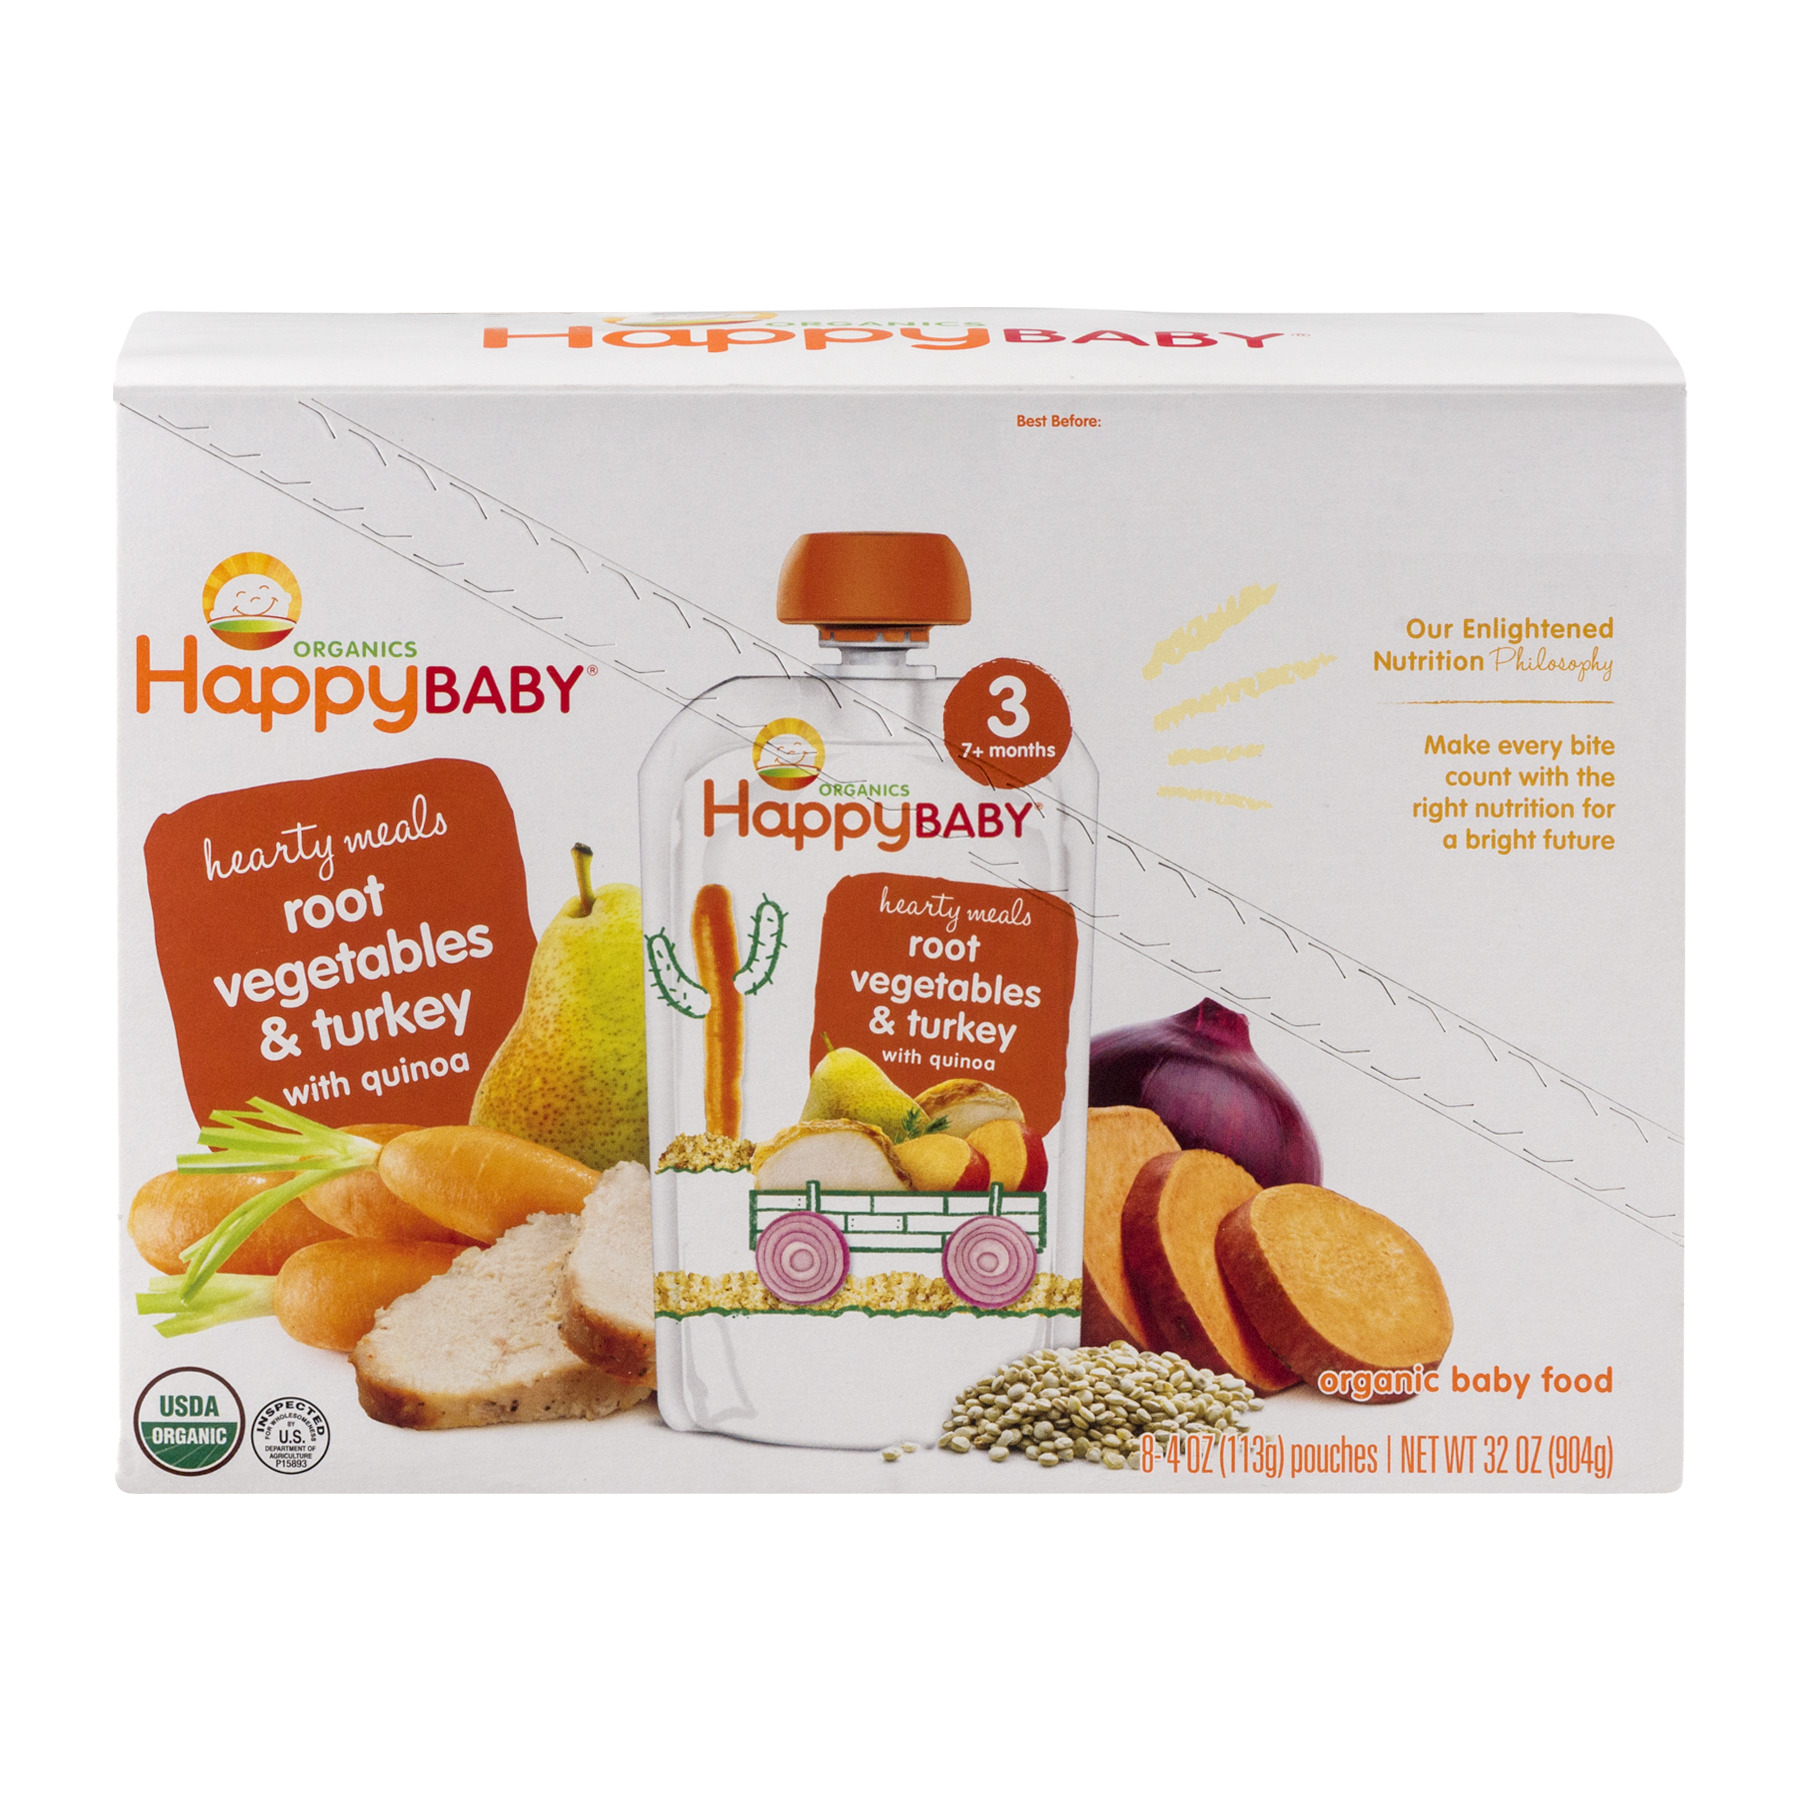 HappyBaby Organics Baby Food Hearty Meals 3 Root Vegetables & Turkey - 8 CT